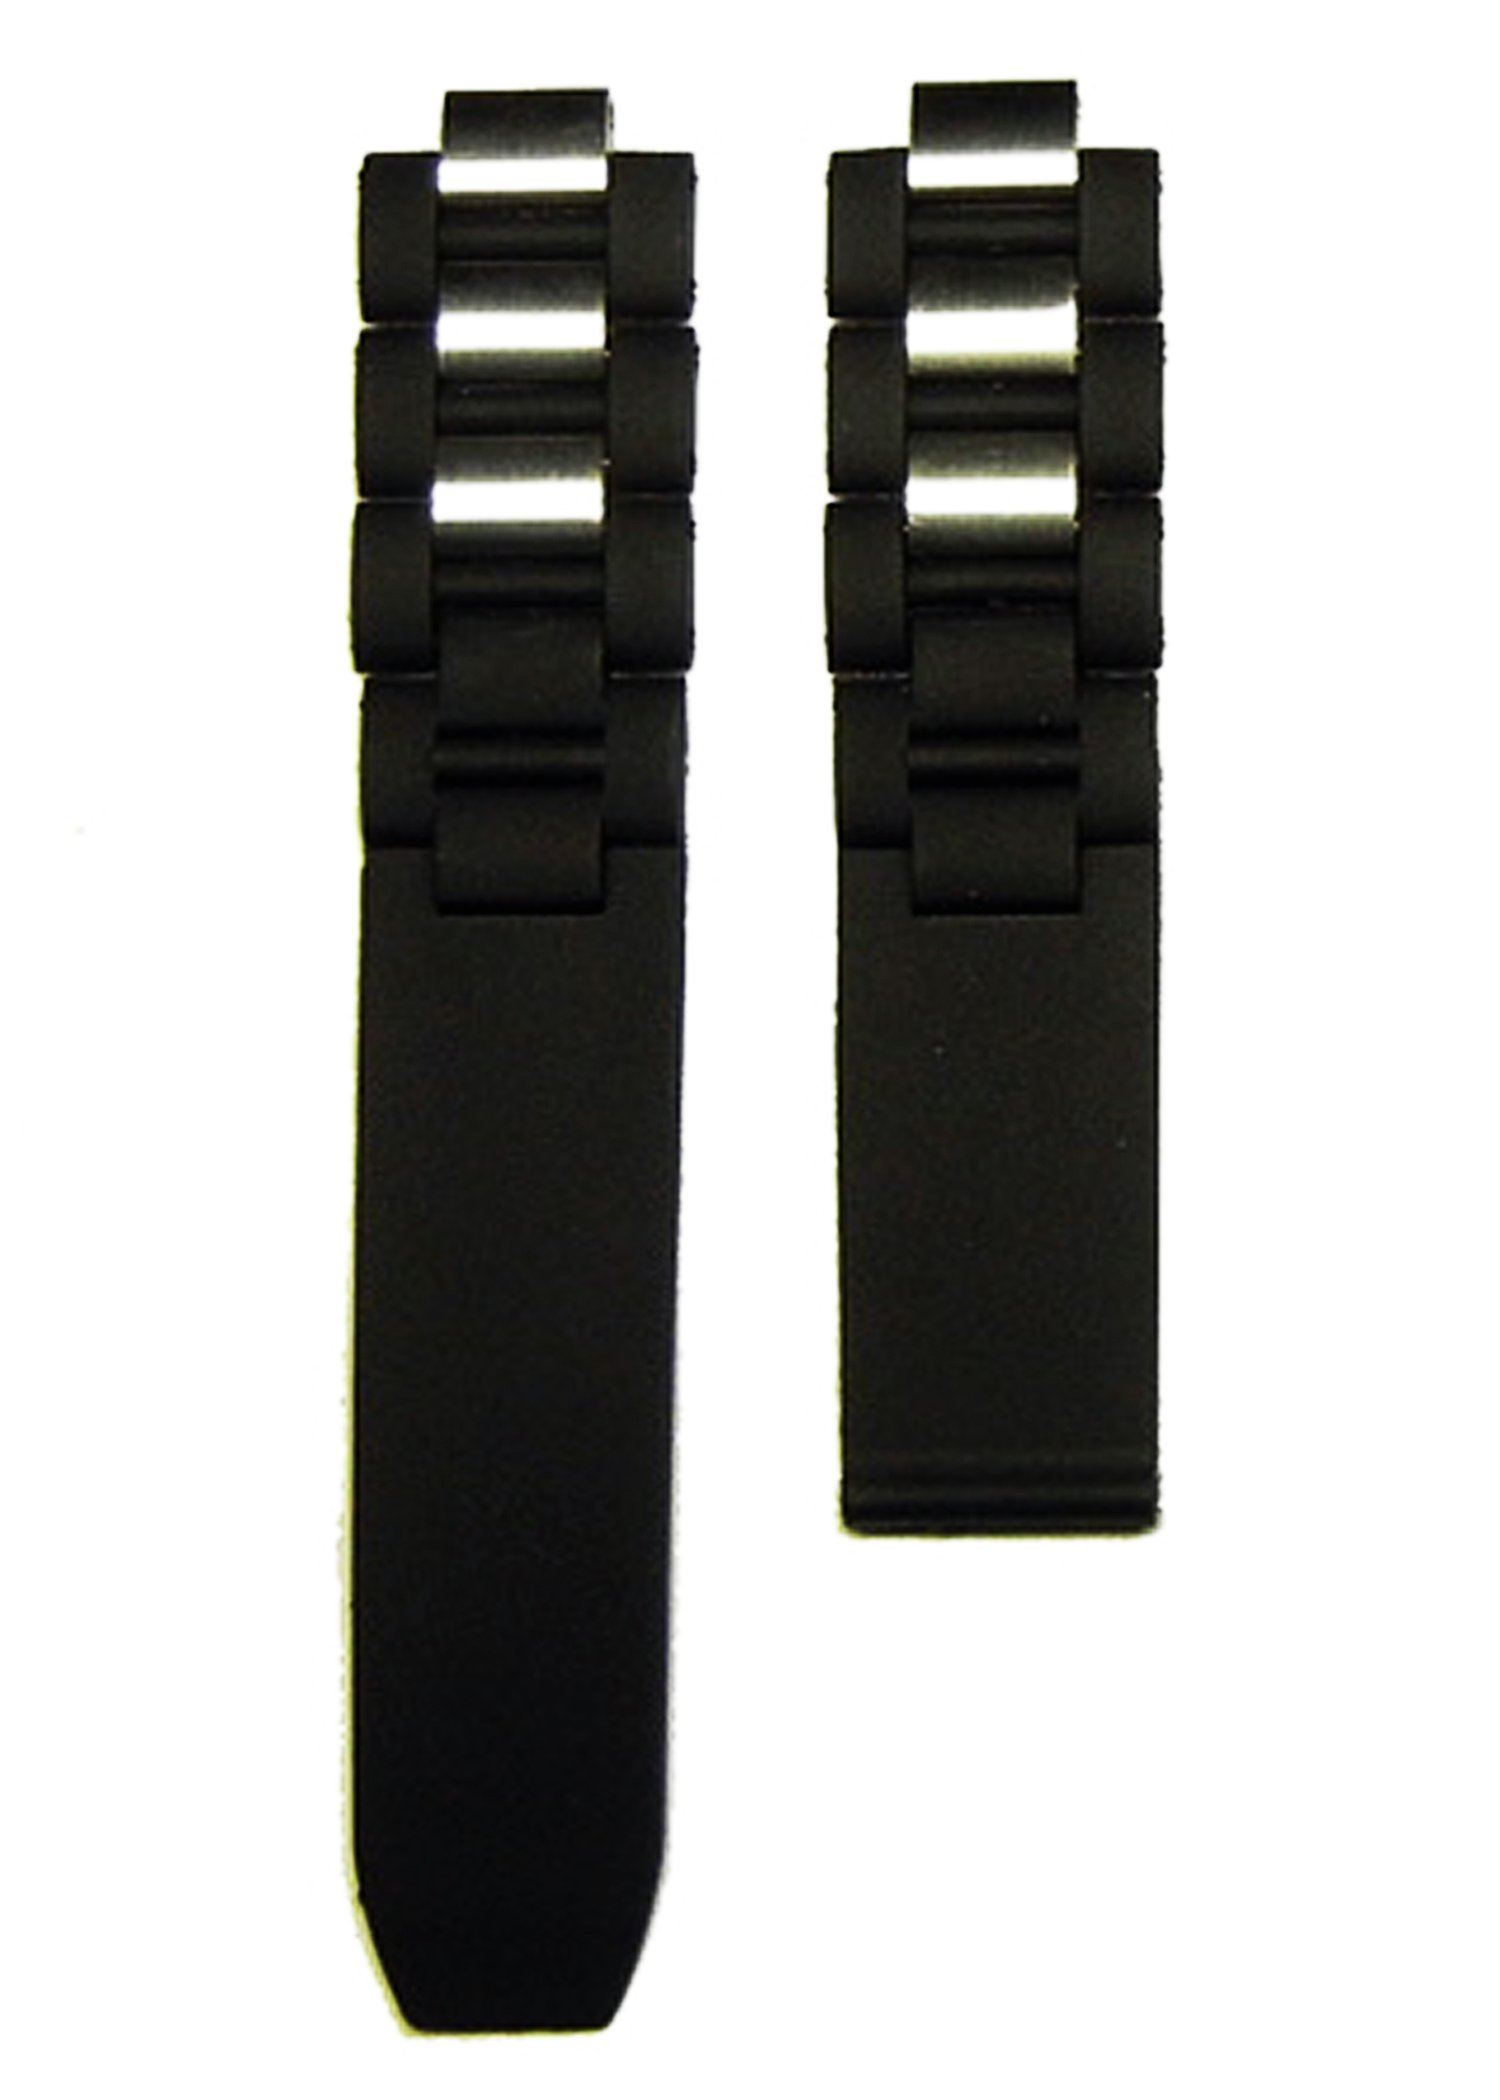 New Rubber/stainless Steel Watch Band Strap Fit Cartier 21 Chronoscaph & Autoscaph (20mm)